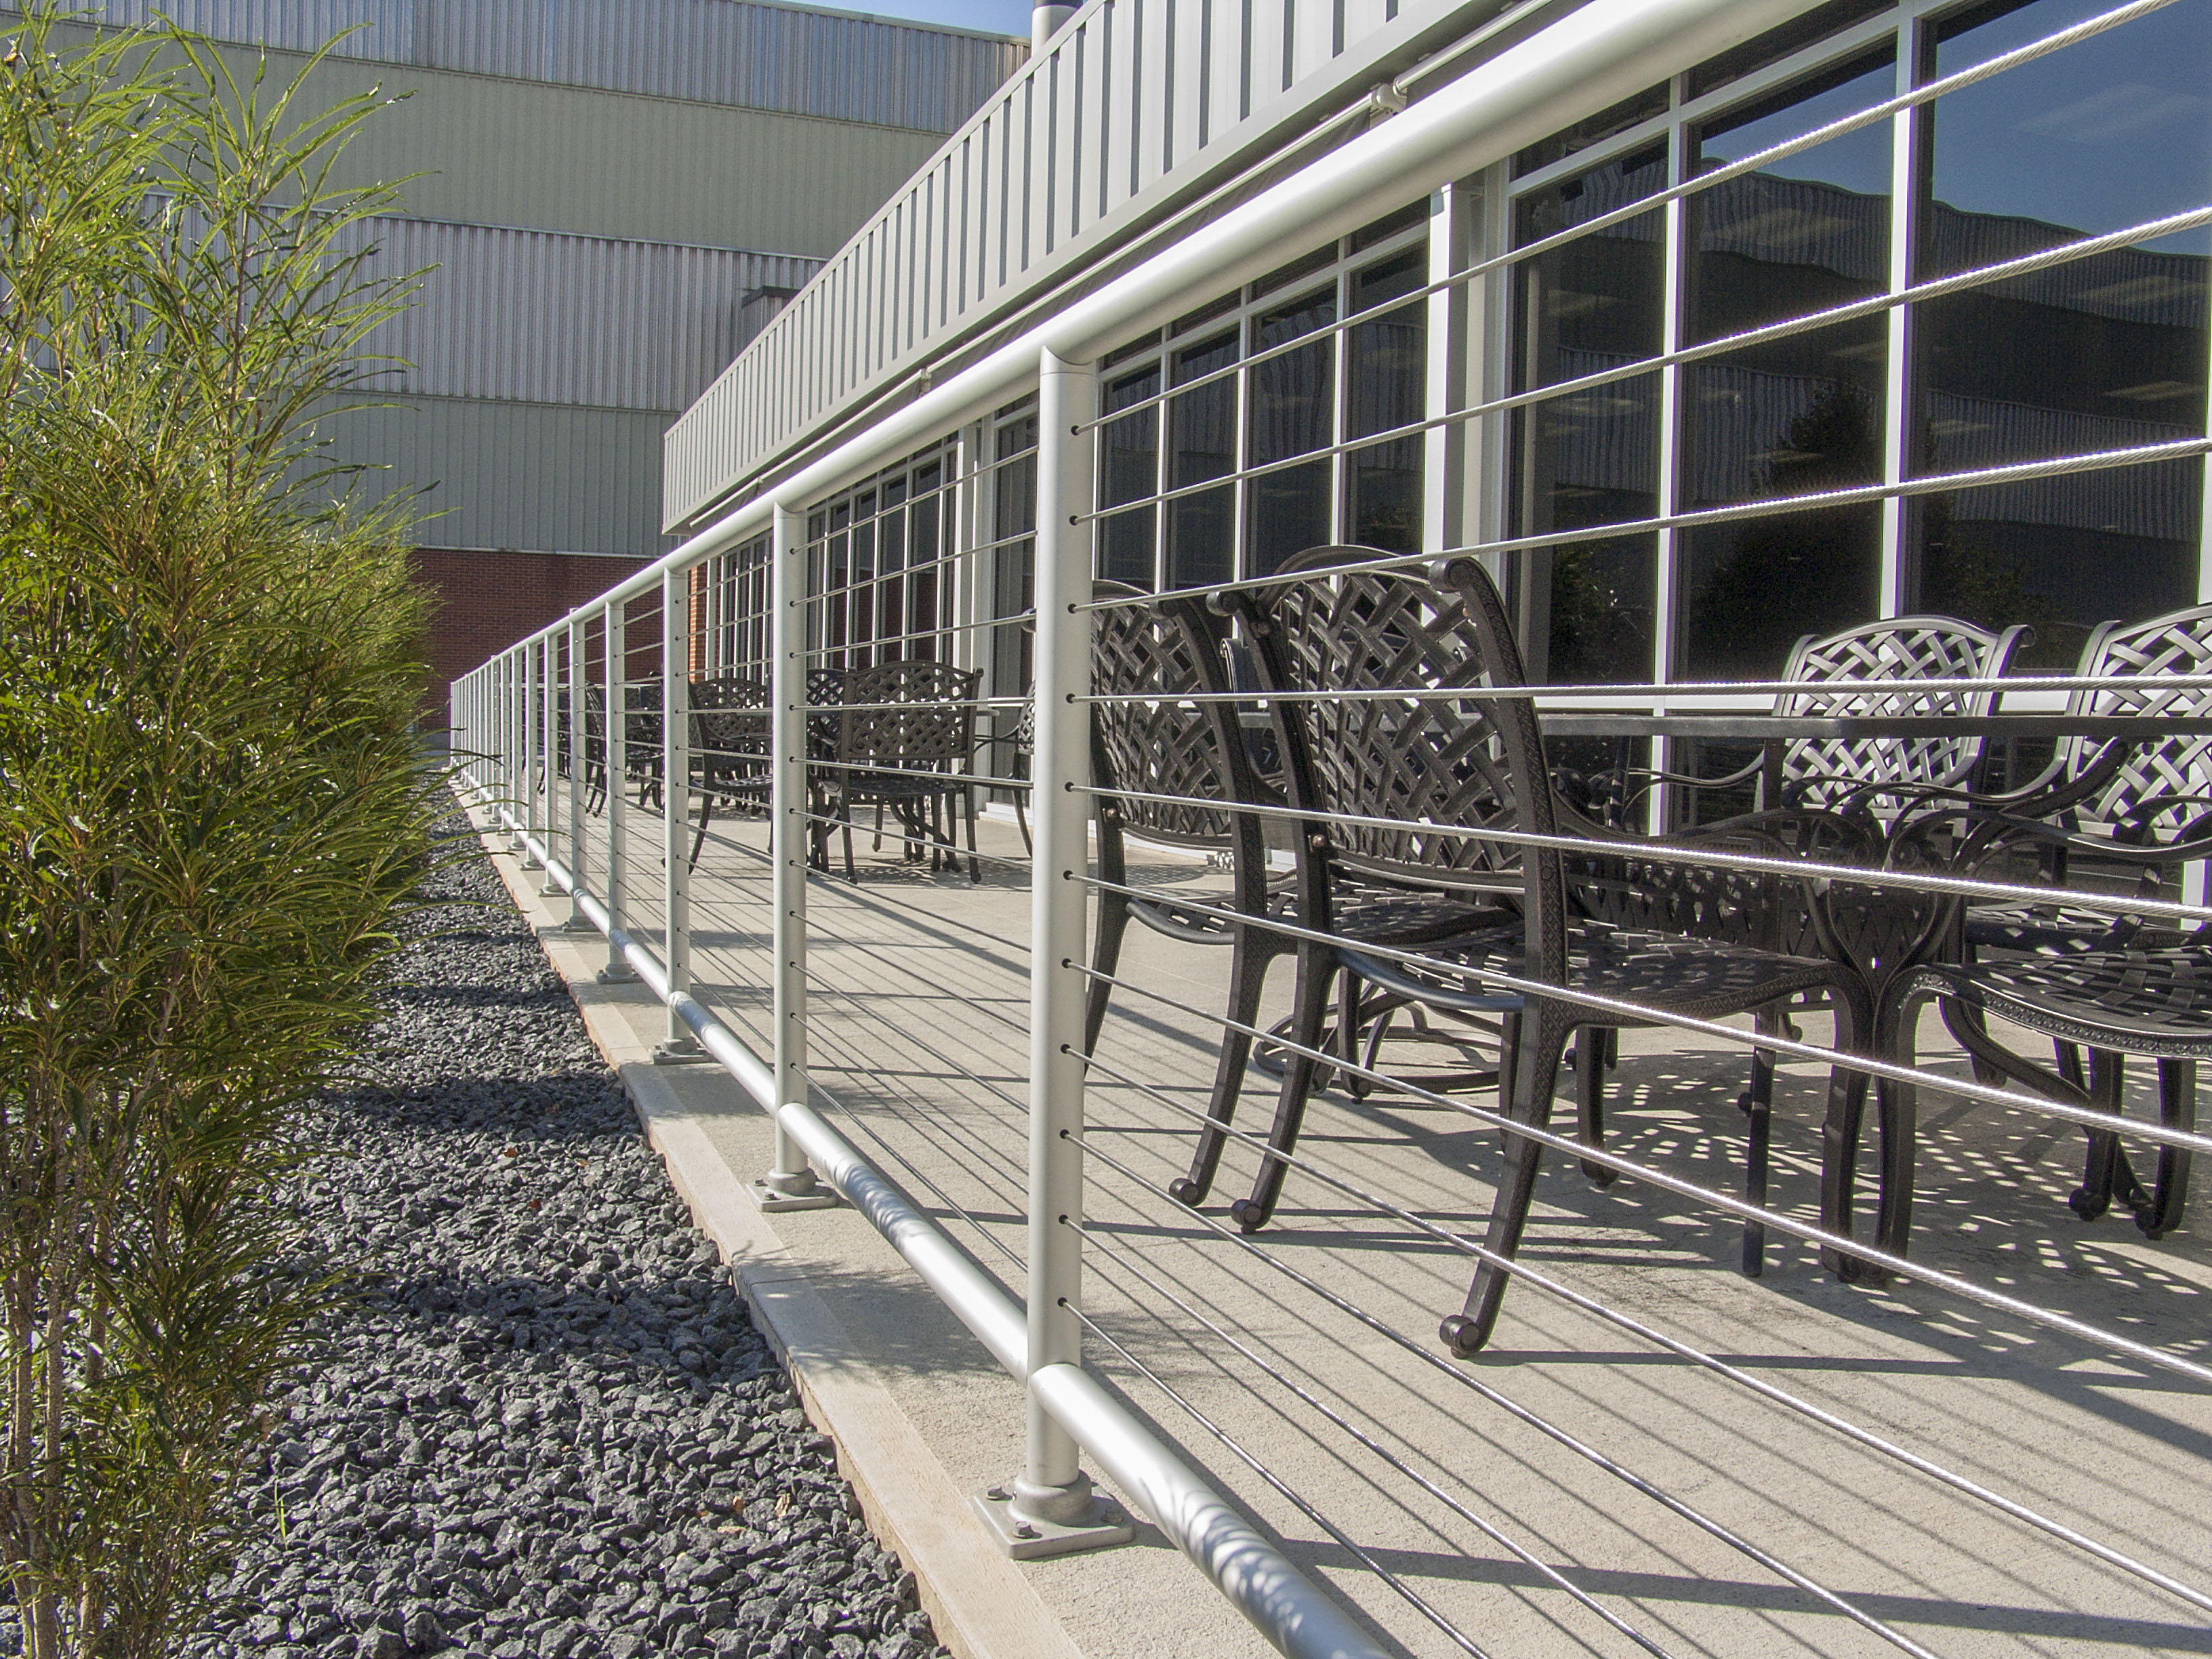 Pipe cable railing borders an outdoor dining space at an Ohio manufacturing facility